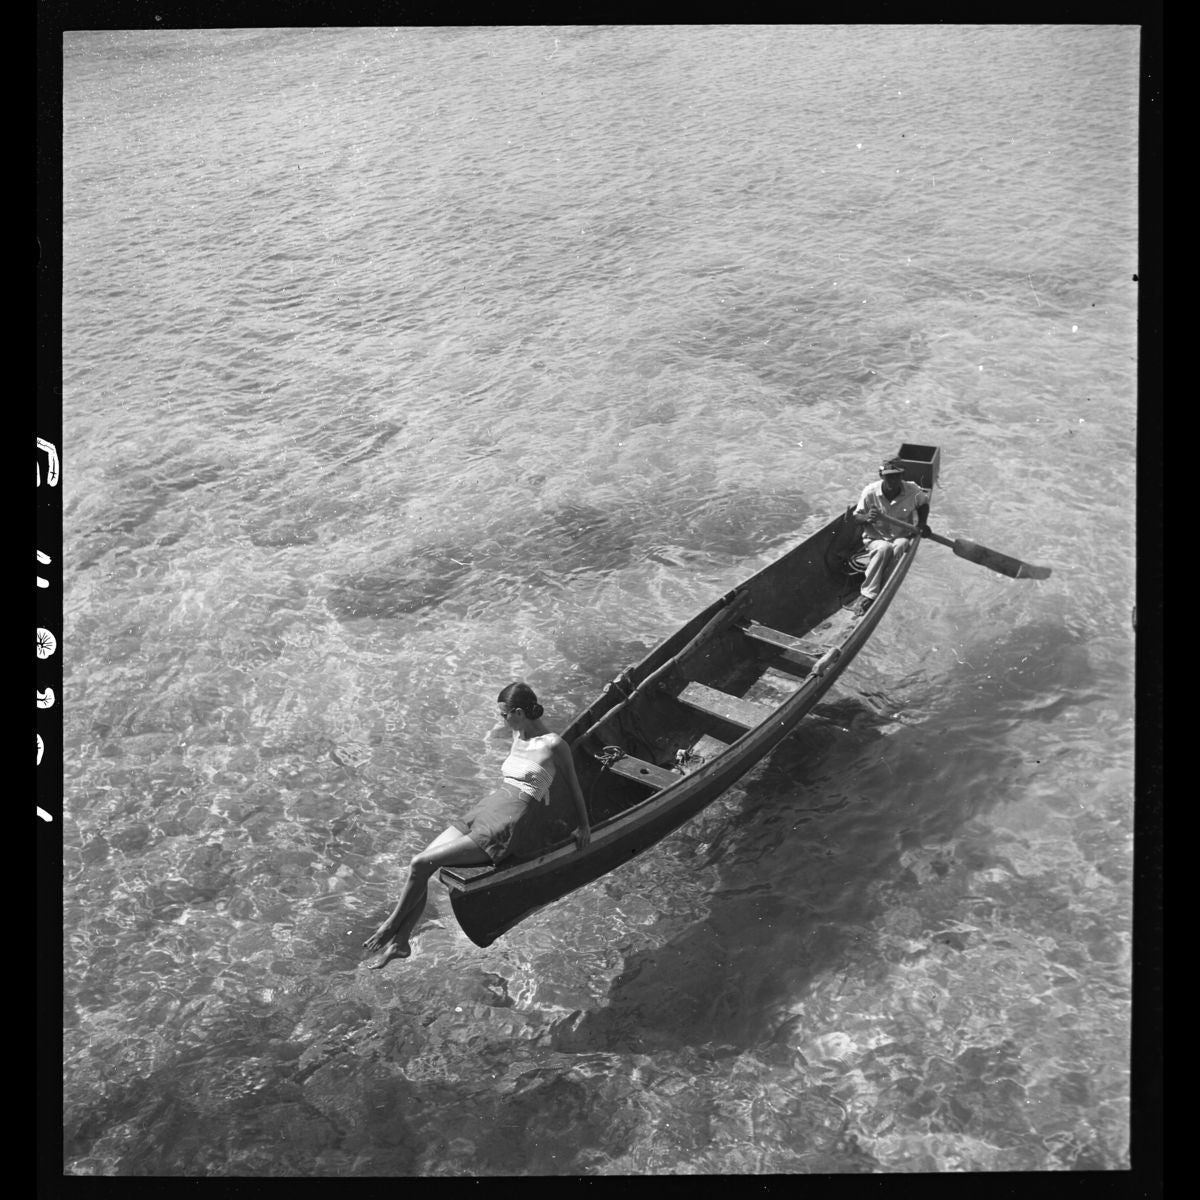 Boating On Montego Bay, Jamaica November by Toni Frissell - 1946